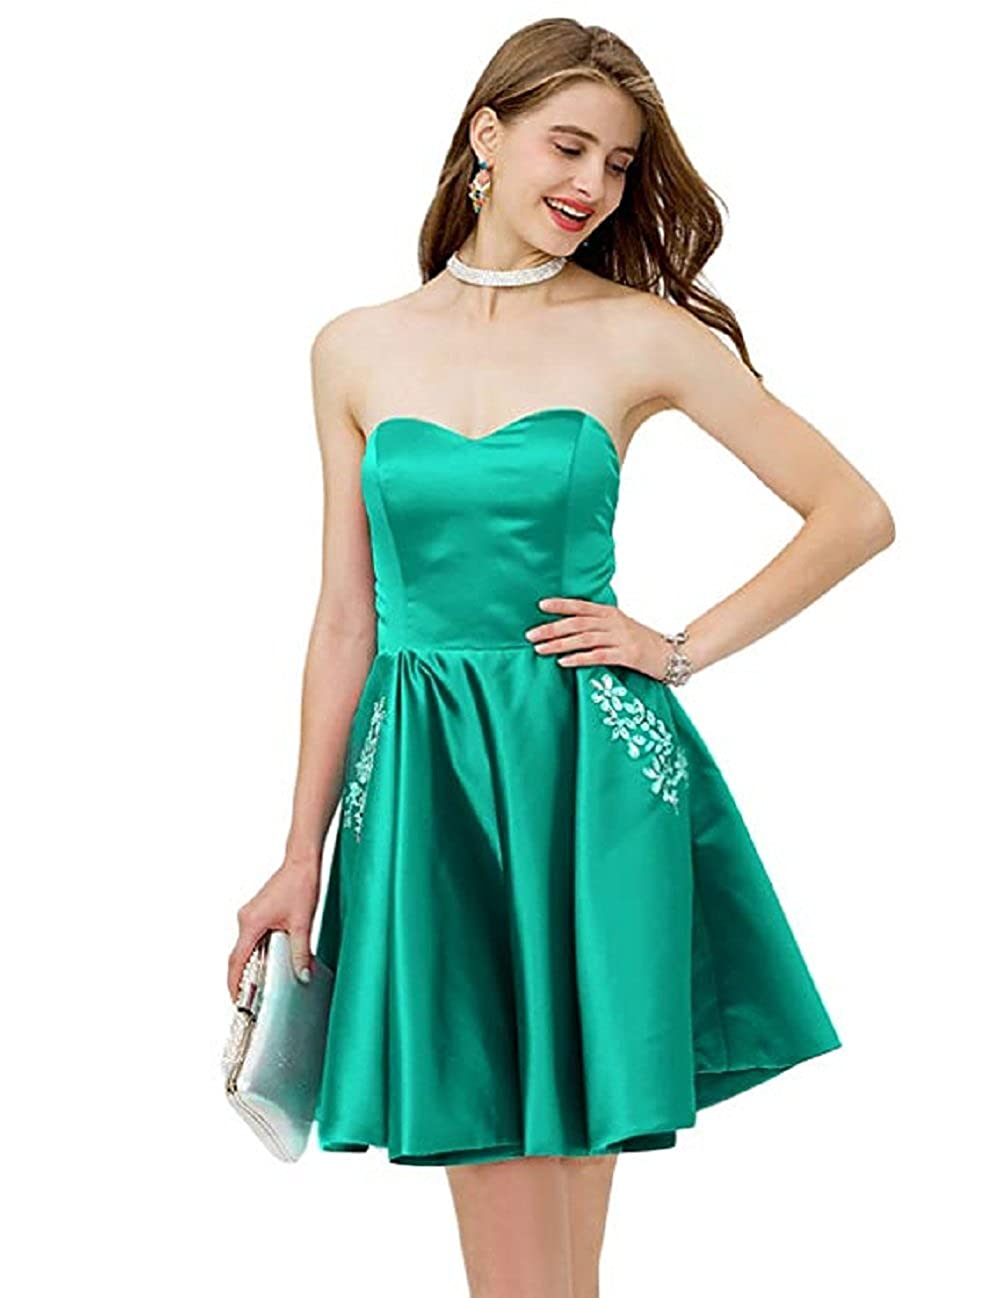 Adodress Women Sweetheart Satin Strapless Short Prom Homecoming Dress with Beaded Pocket